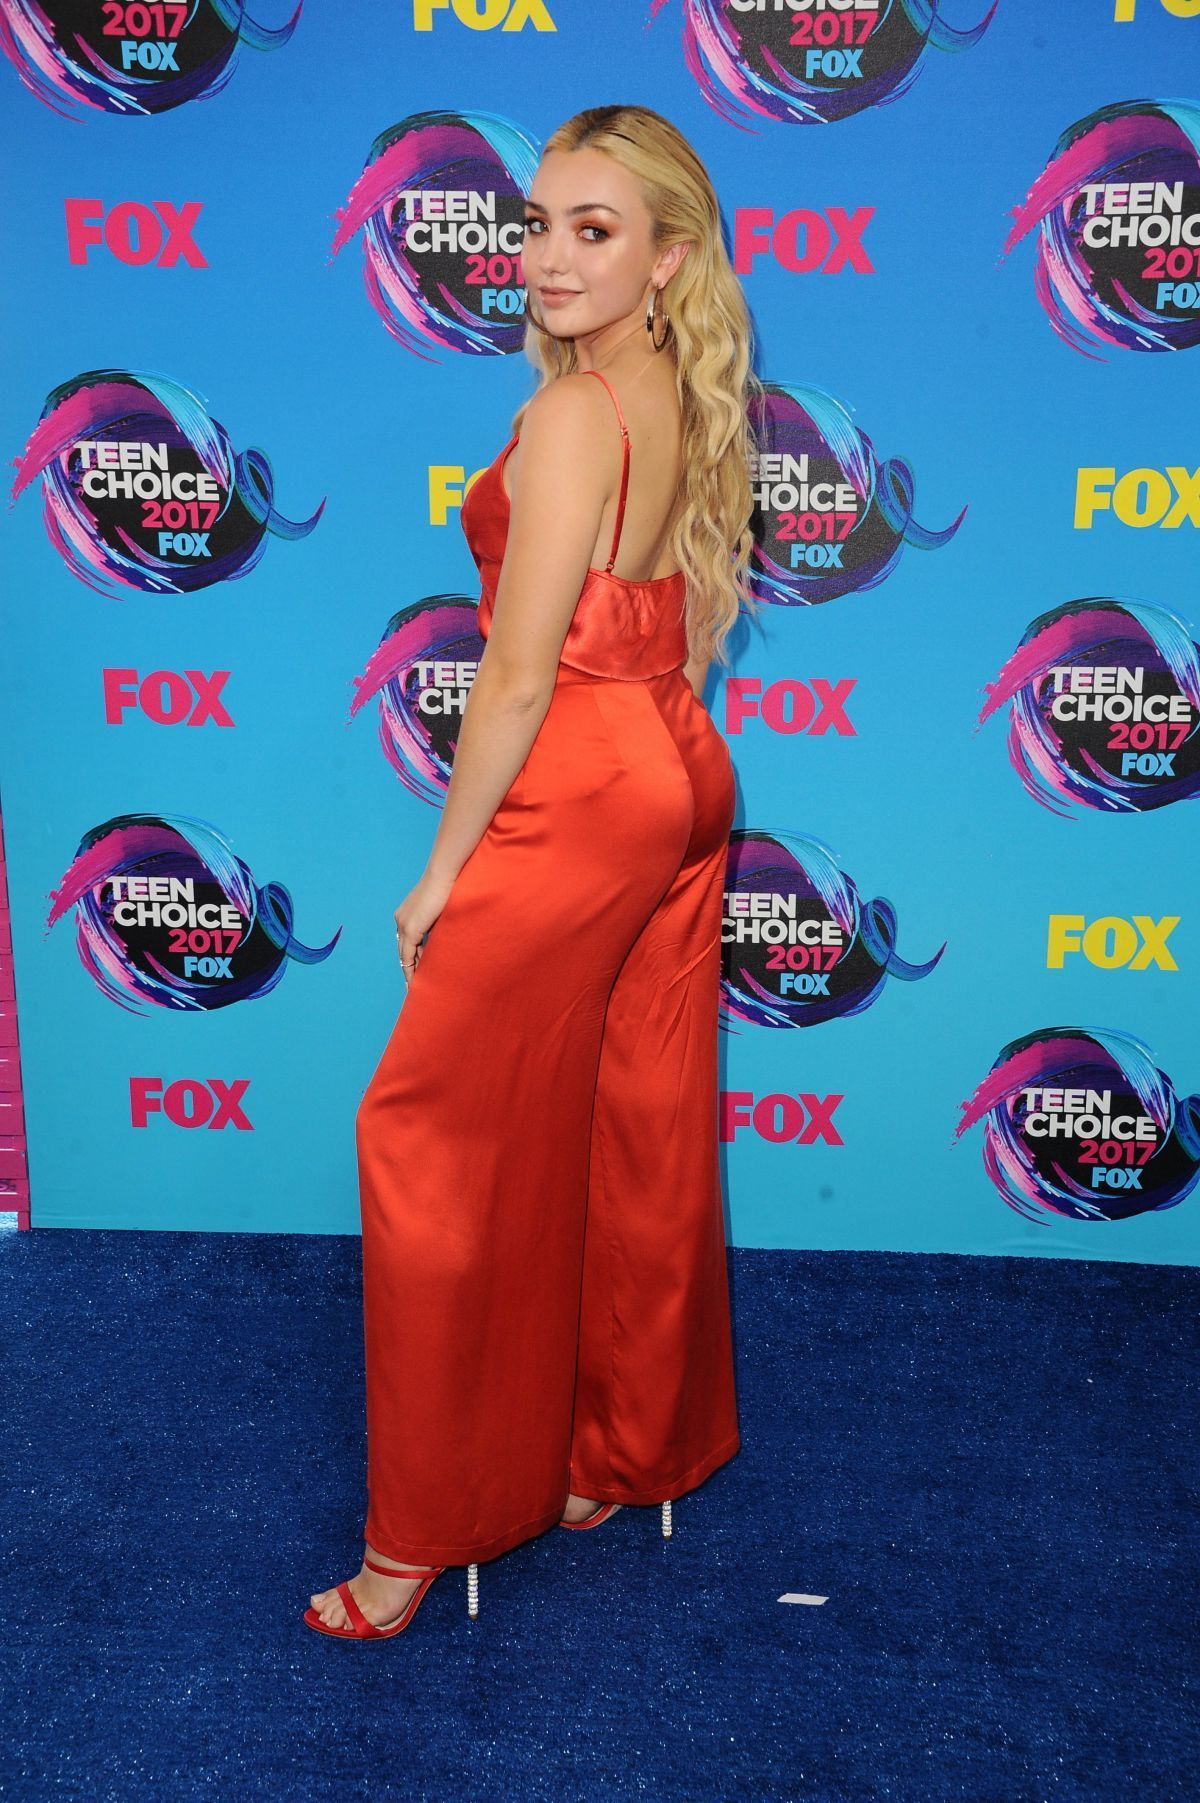 Peyton Roi List At Teen Choice Awards 2017 Los Angeles